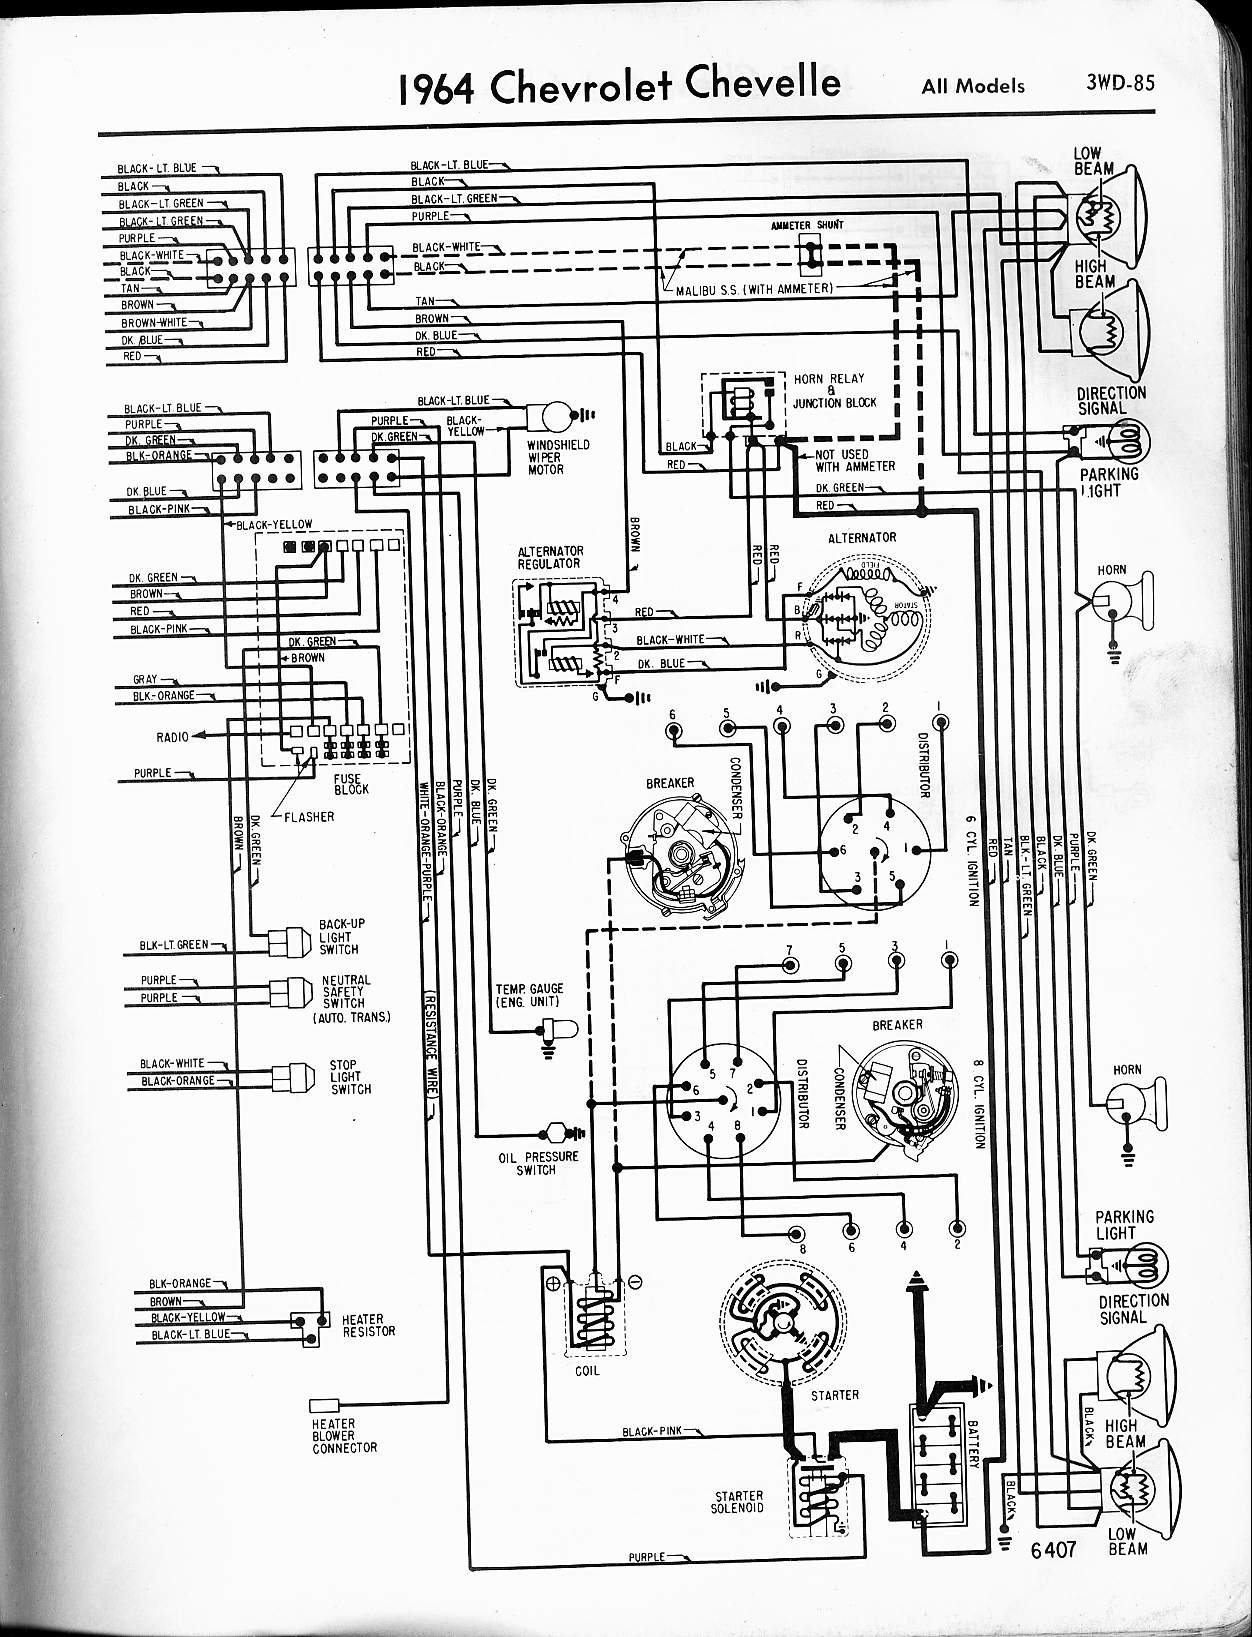 1966 Chevy C10 Wiring Diagram For Dash Books Of Mustang Electrical Only Picture 1970 Fuse Box Auto Rh Sistemagroup Me